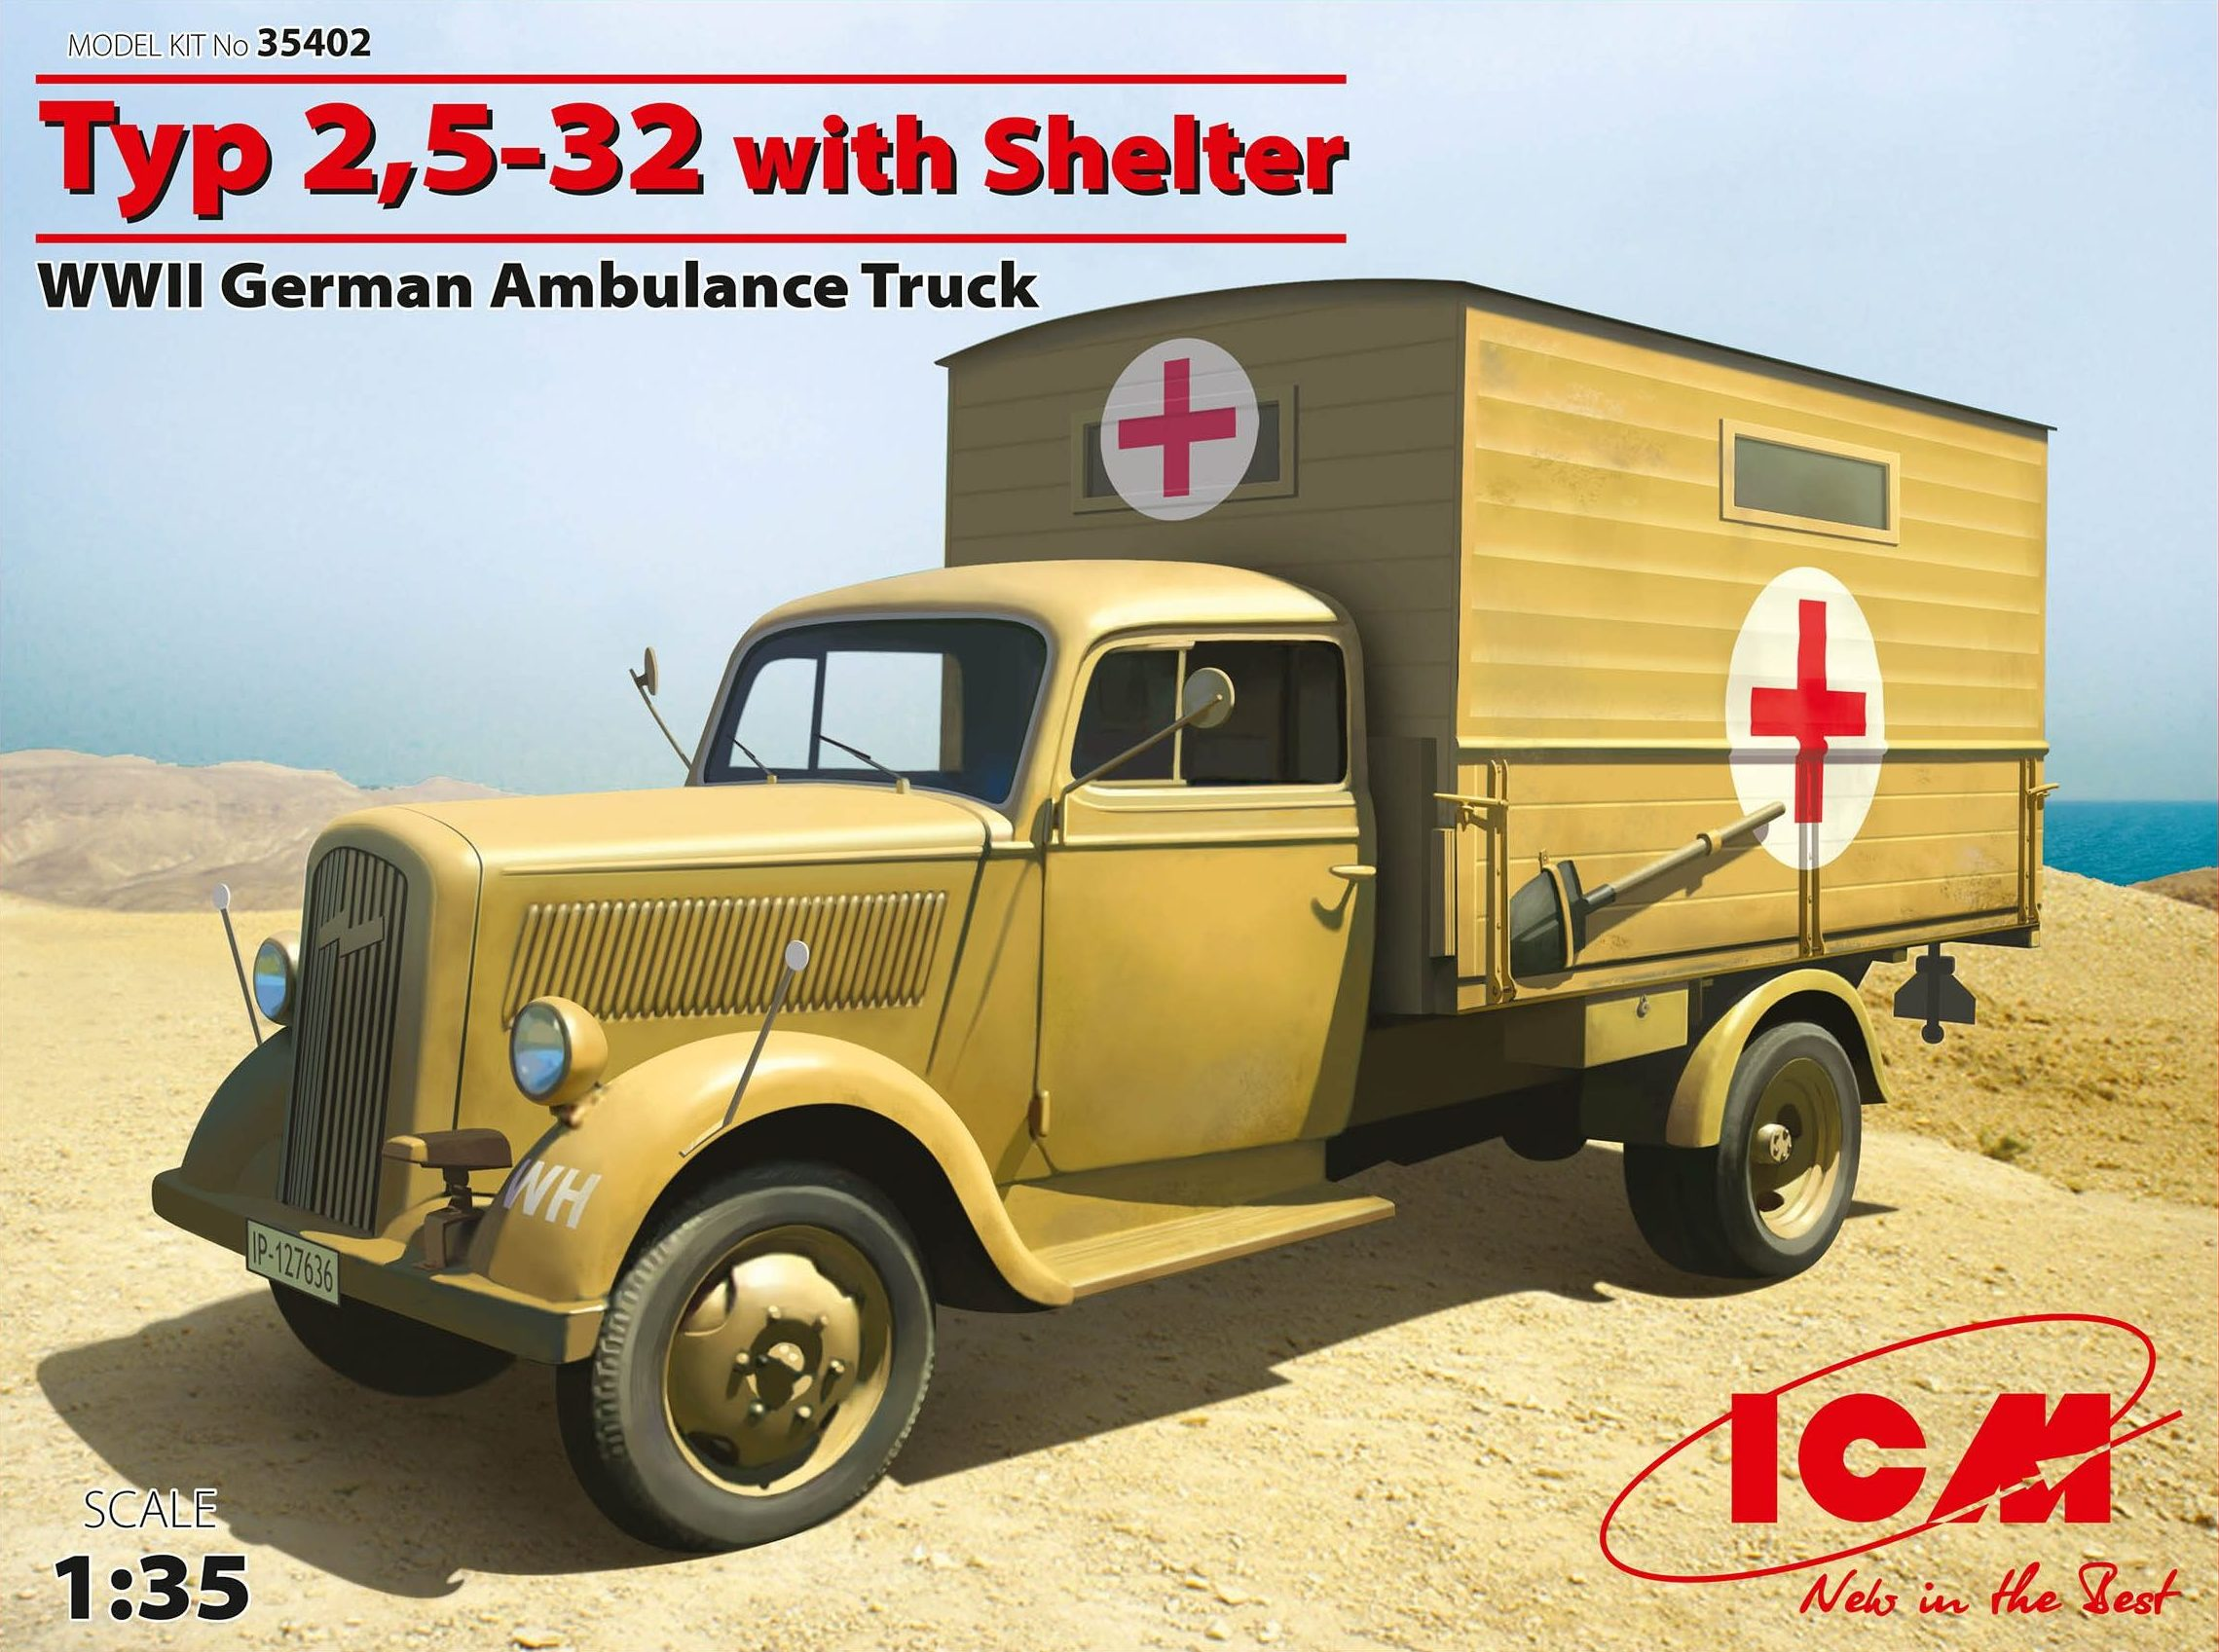 ICM Typ 2,5-32 with Shelter, WWII German Ambulance Truck